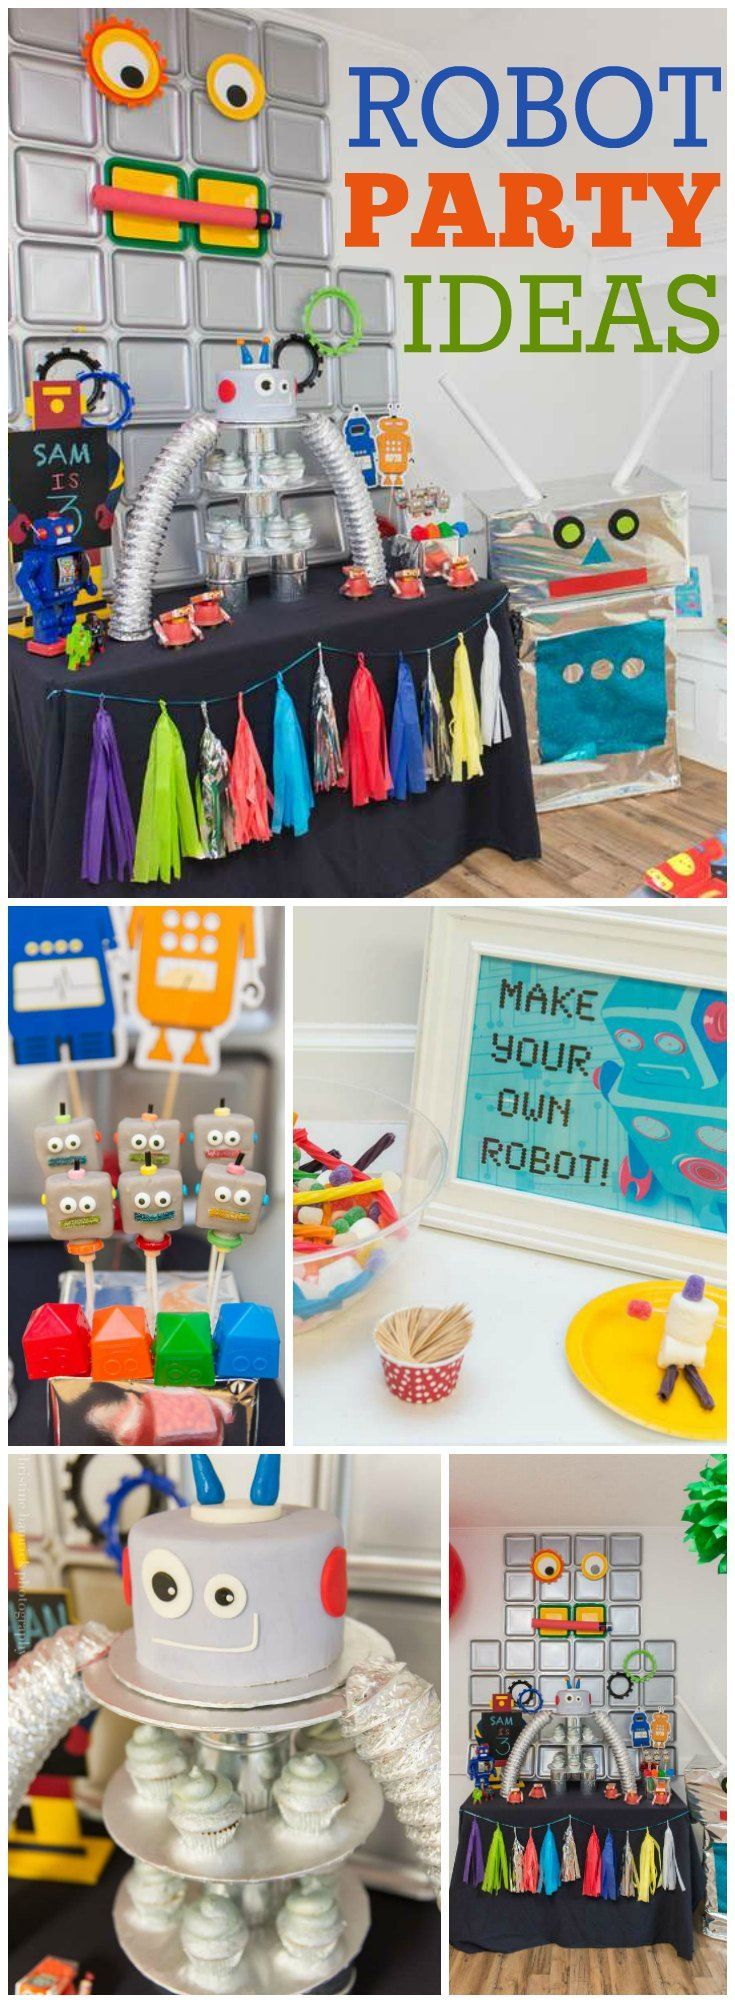 What a fun and creative robot boy birthday party! …